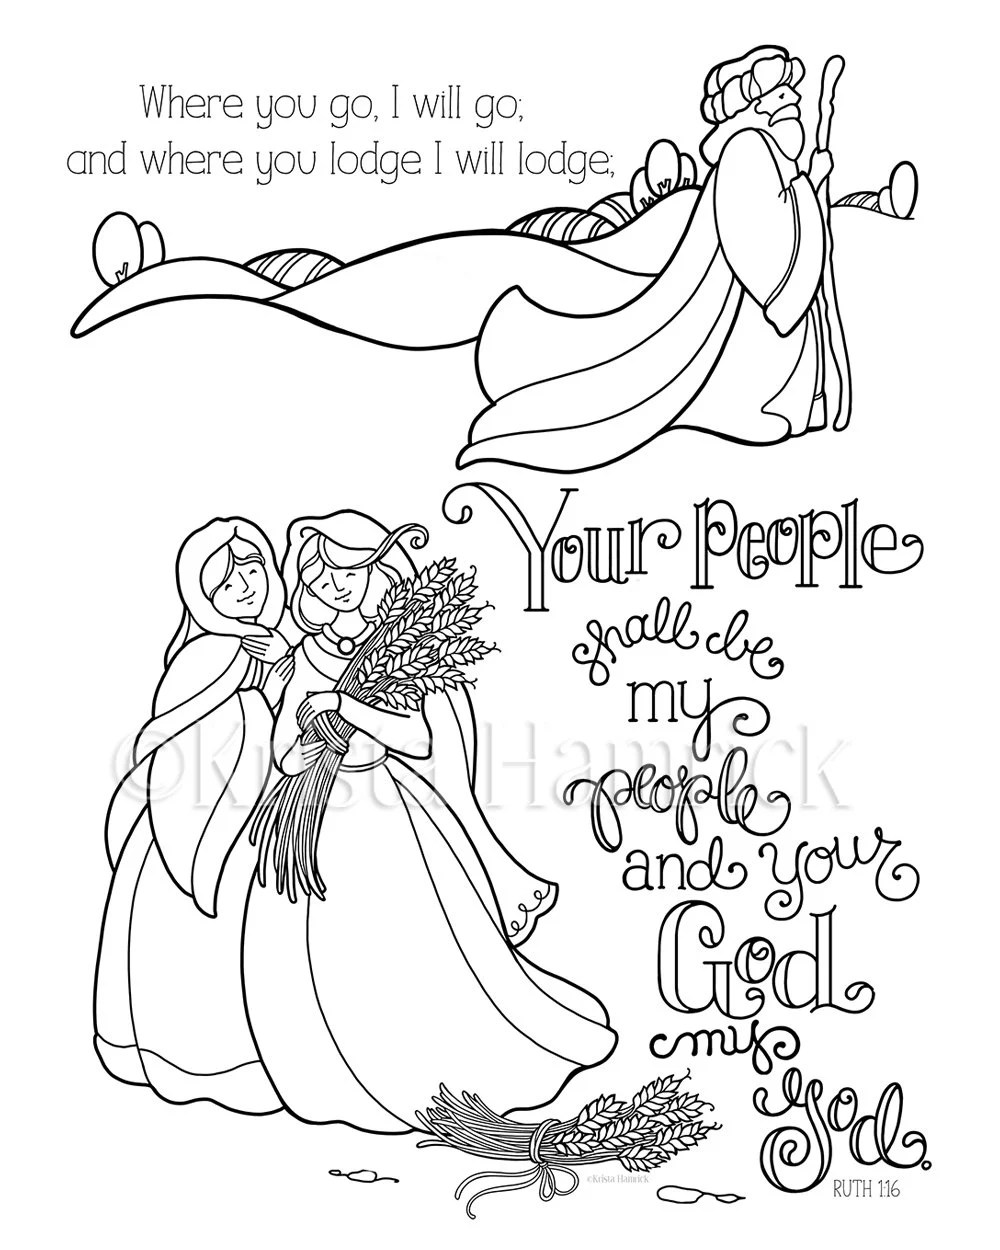 Ruth coloring page in two sizes: 8.5X11 Bible journaling